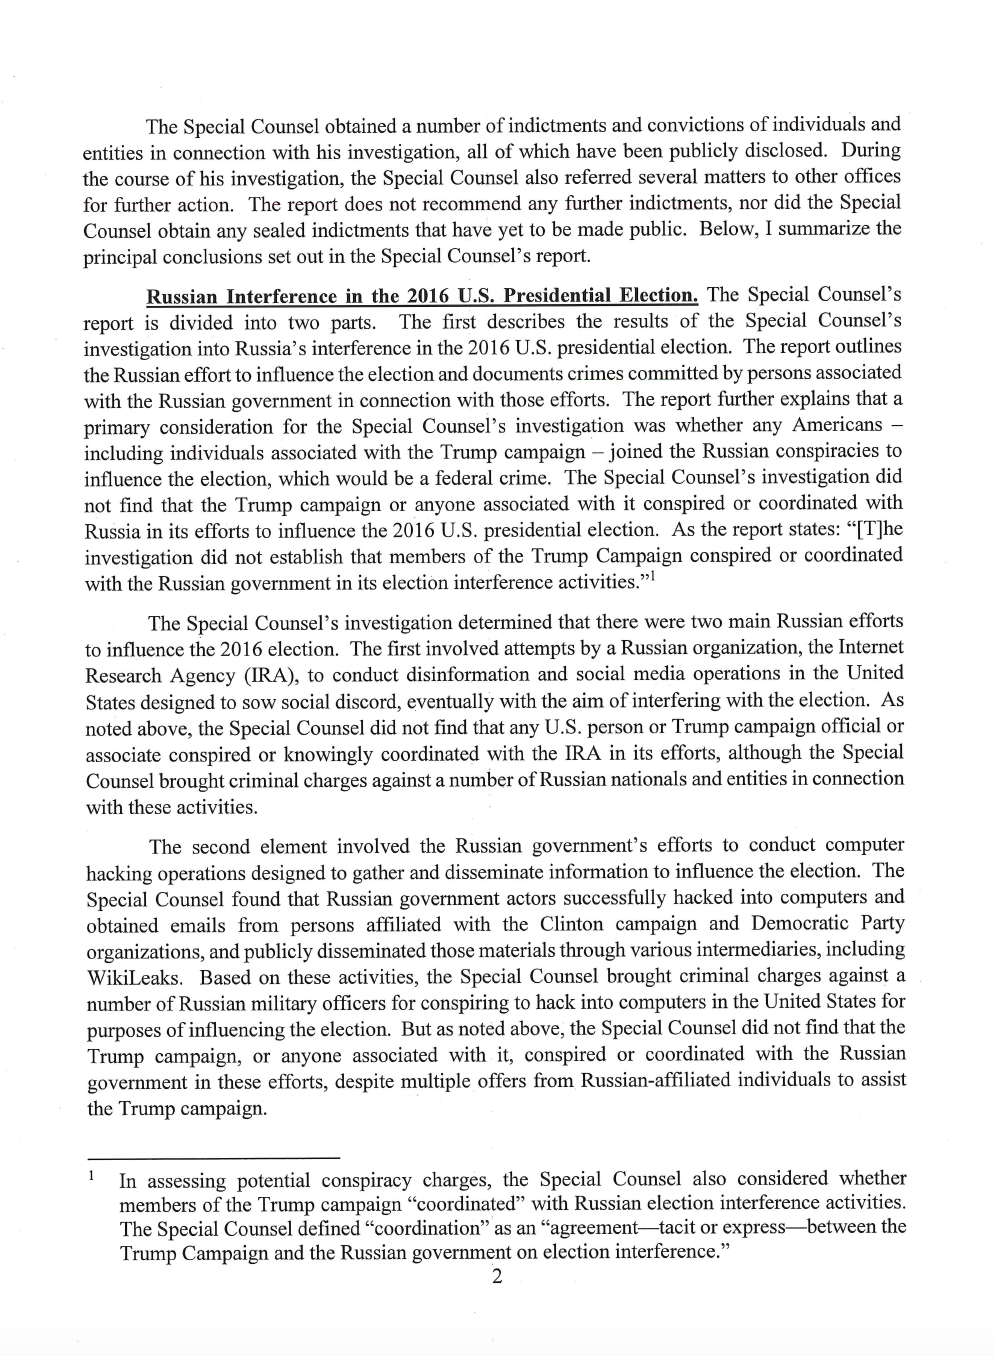 Page 2 of Attorney General William Barr's letter to Congress on Special Counsel Robert Mueller's report.